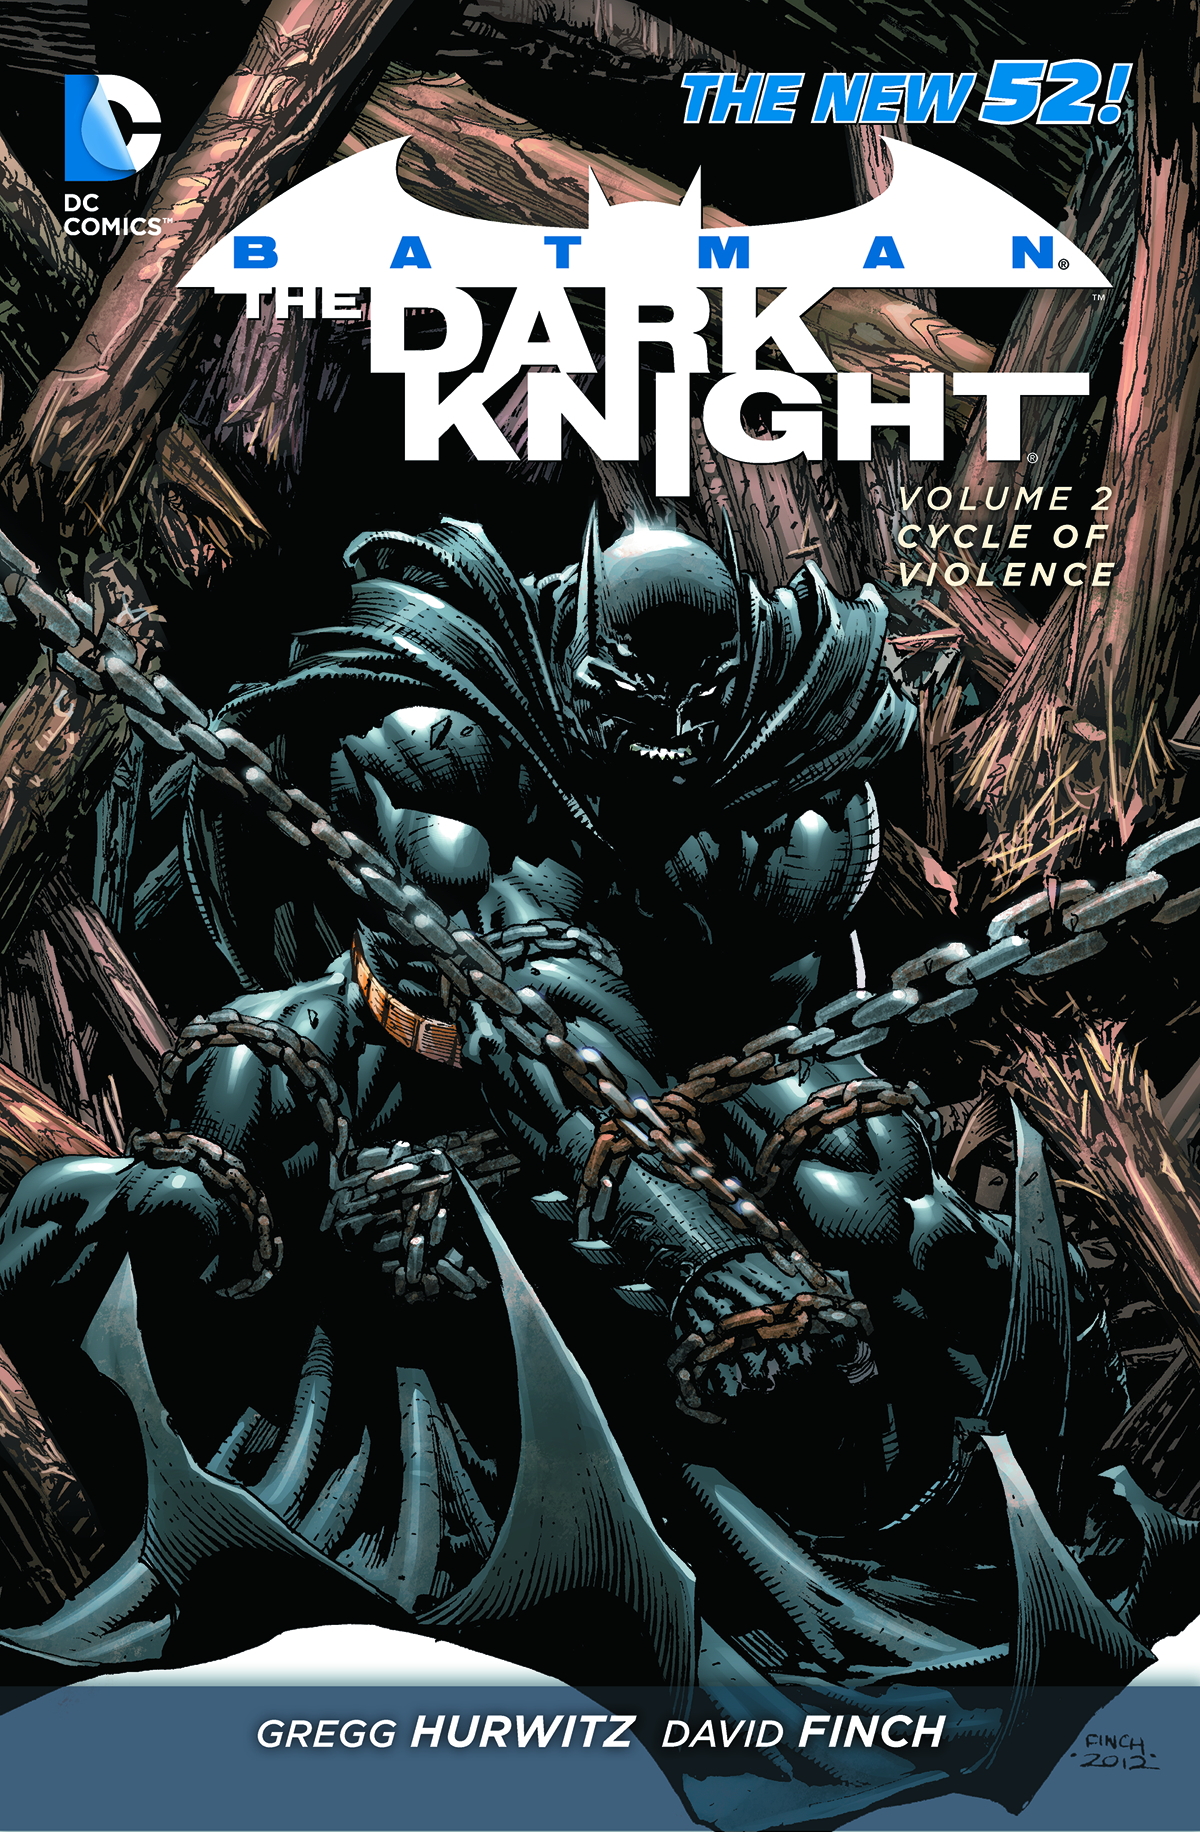 BATMAN DARK KNIGHT HC VOL 02 CYCLE OF VIOLENCE